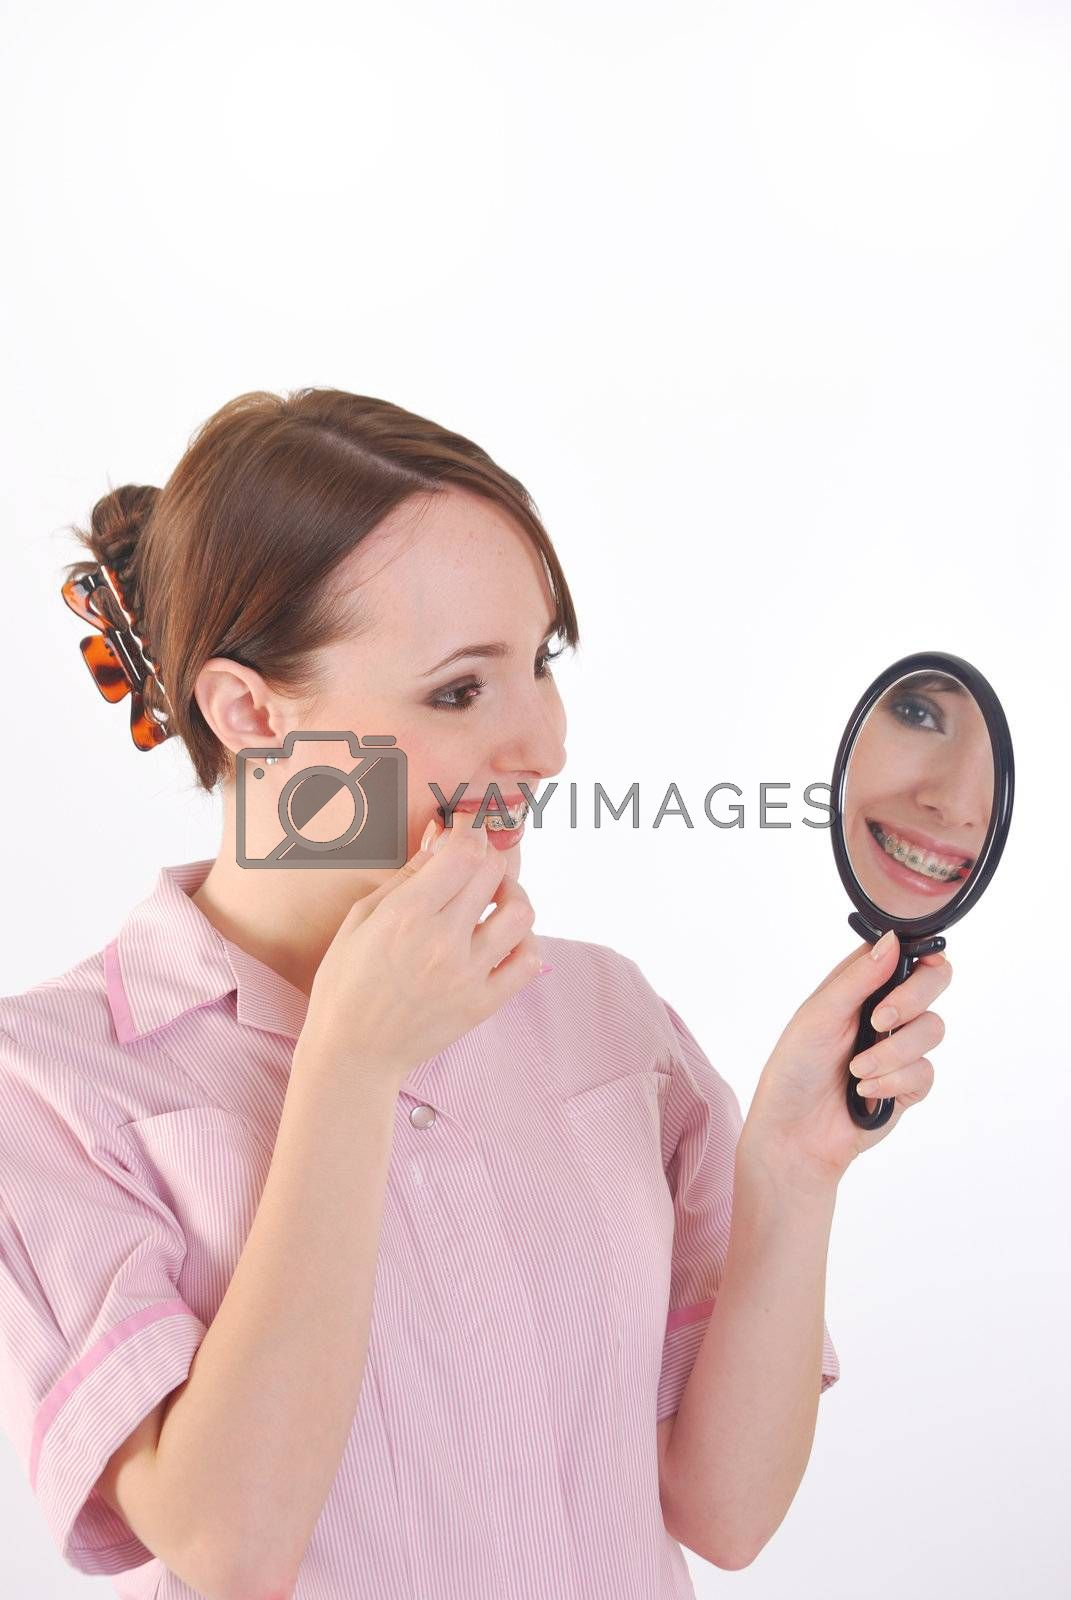 girl with braces cleaning teeth